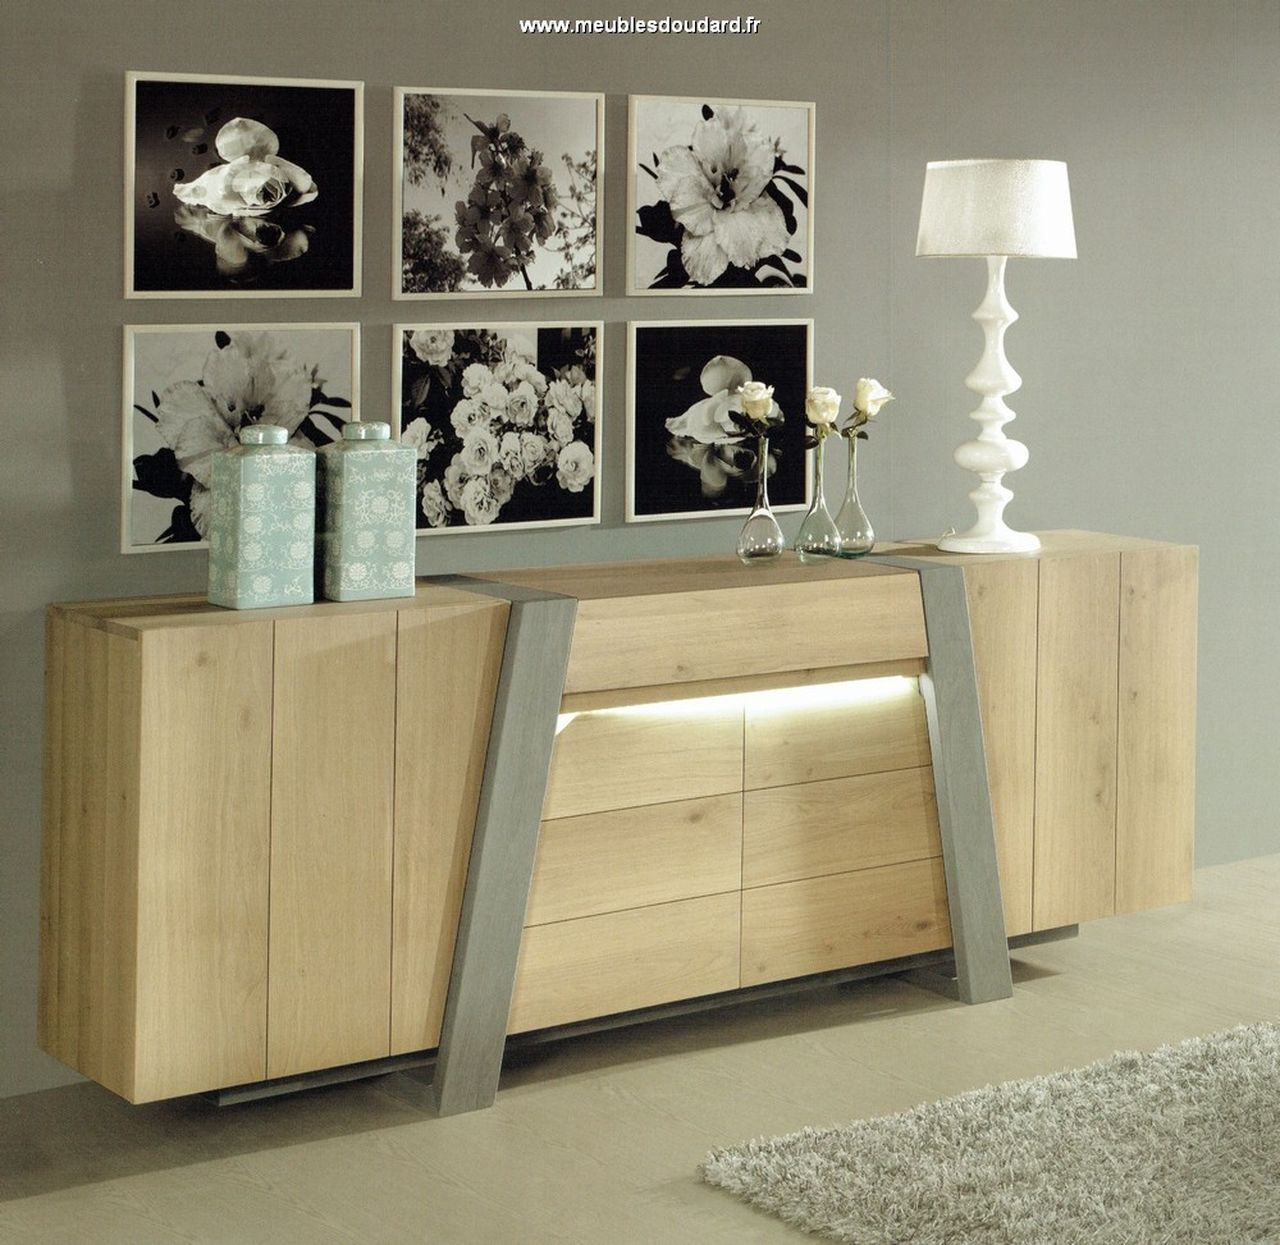 meubles modernes bahut contemporain en bois massif salle manger moderne en bois naturel. Black Bedroom Furniture Sets. Home Design Ideas